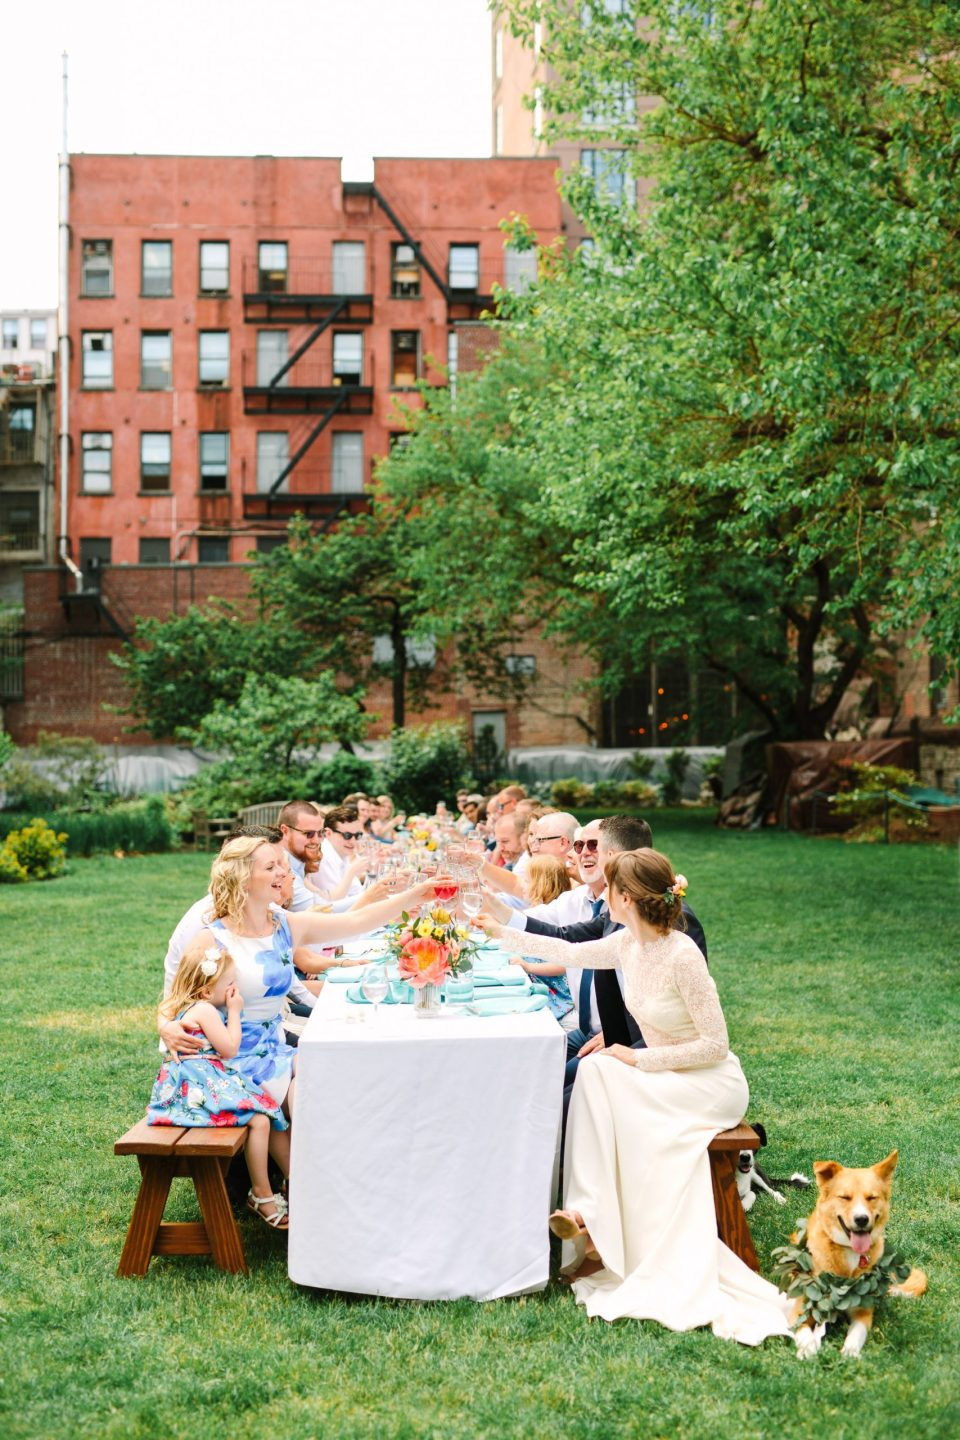 Intimate wedding outdoor dinnerby Mary Costa Photography